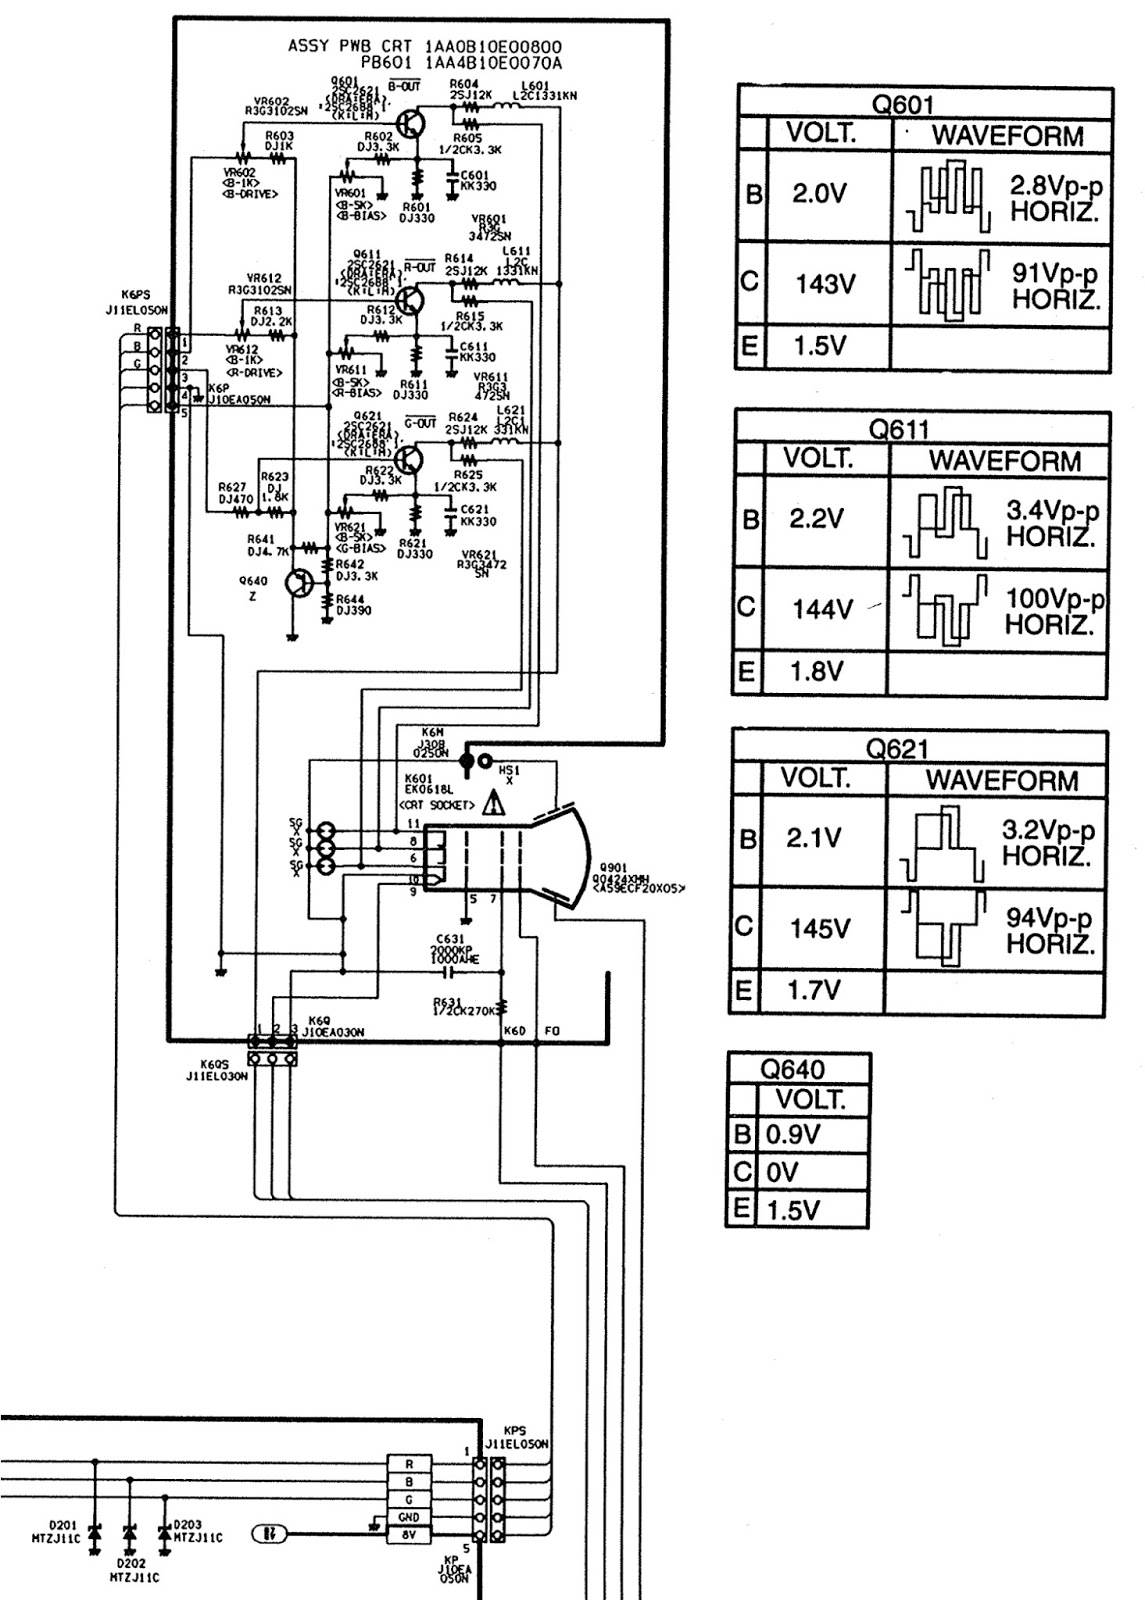 Popular Circuits Page 195 Rectifier Circuitbmp Troubleshooting Crt Tv No Picture Audio